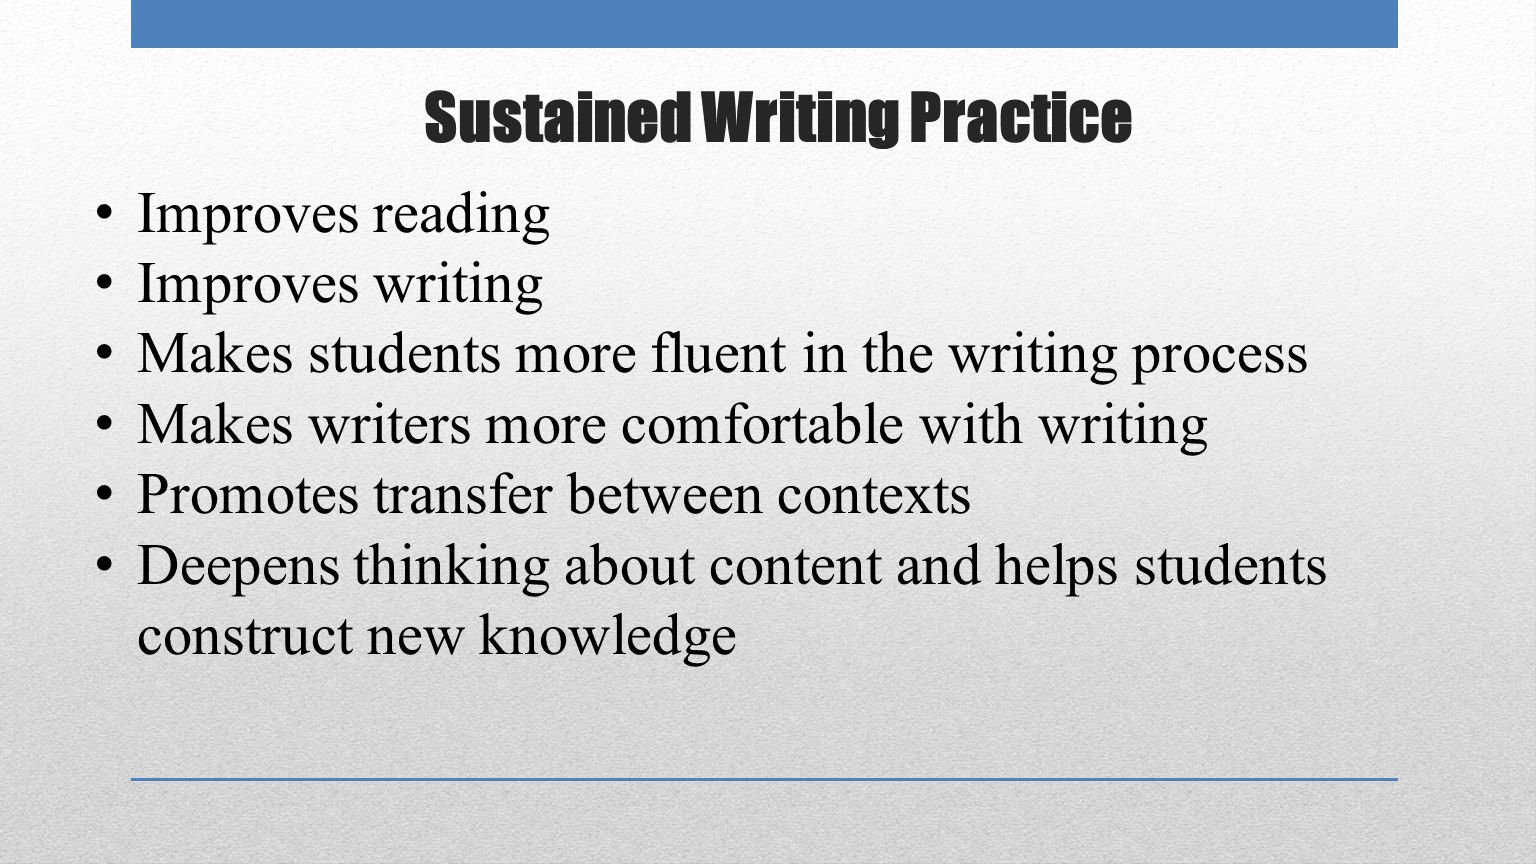 Sustained Writing Practice Improves reading Improves writing Makes students more fluent in the writing process Makes writers more comfortable with writing Promotes transfer between contexts Deepens thinking about content and helps students construct new knowledge